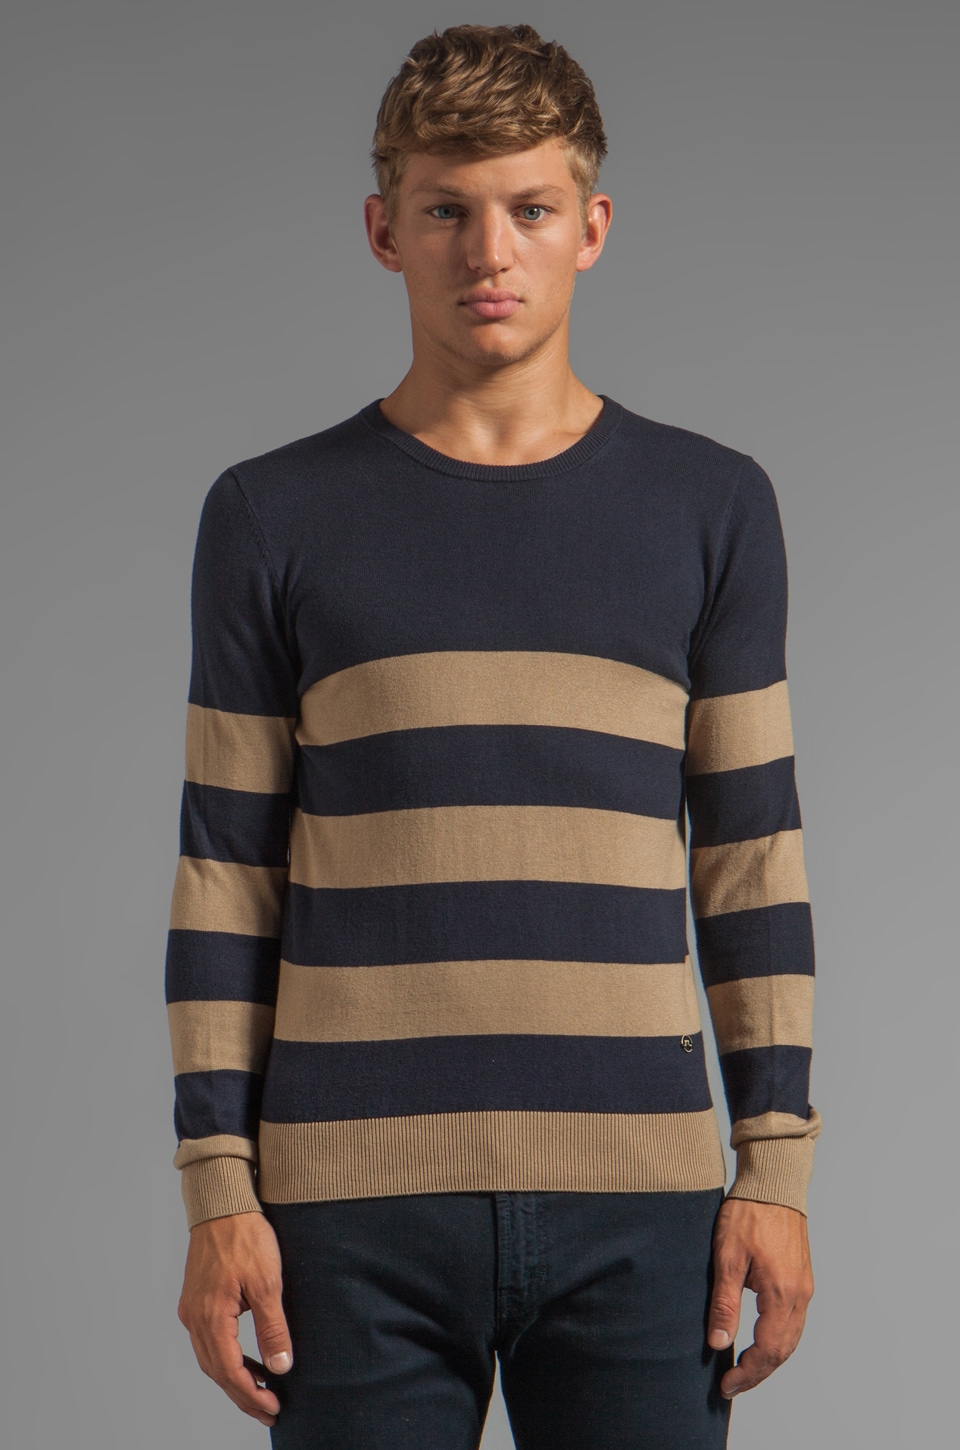 J. Lindeberg Terry Stripe Sweater in Dark Navy